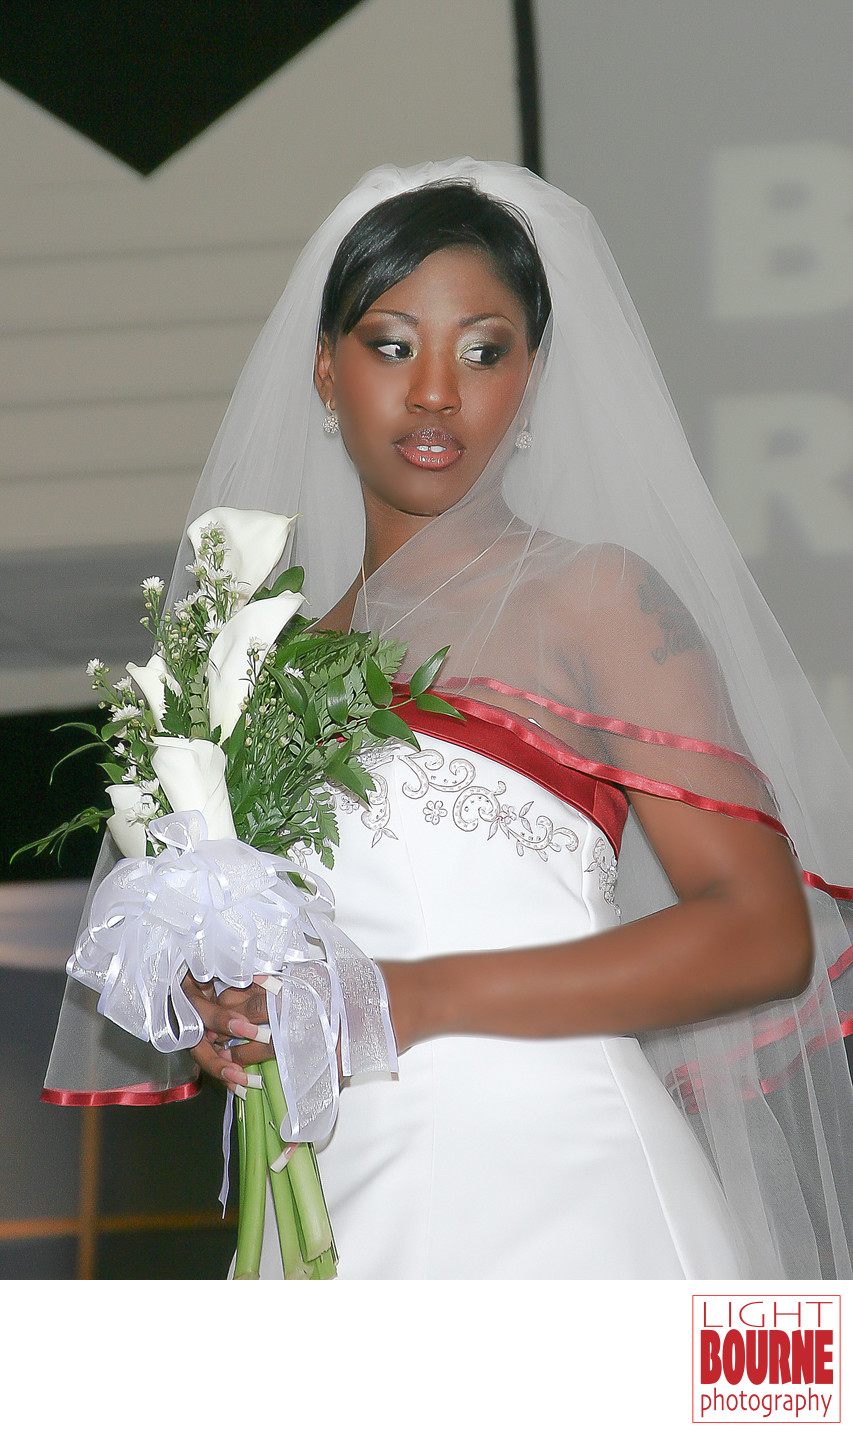 Bahamas bride at Button Bridal Show